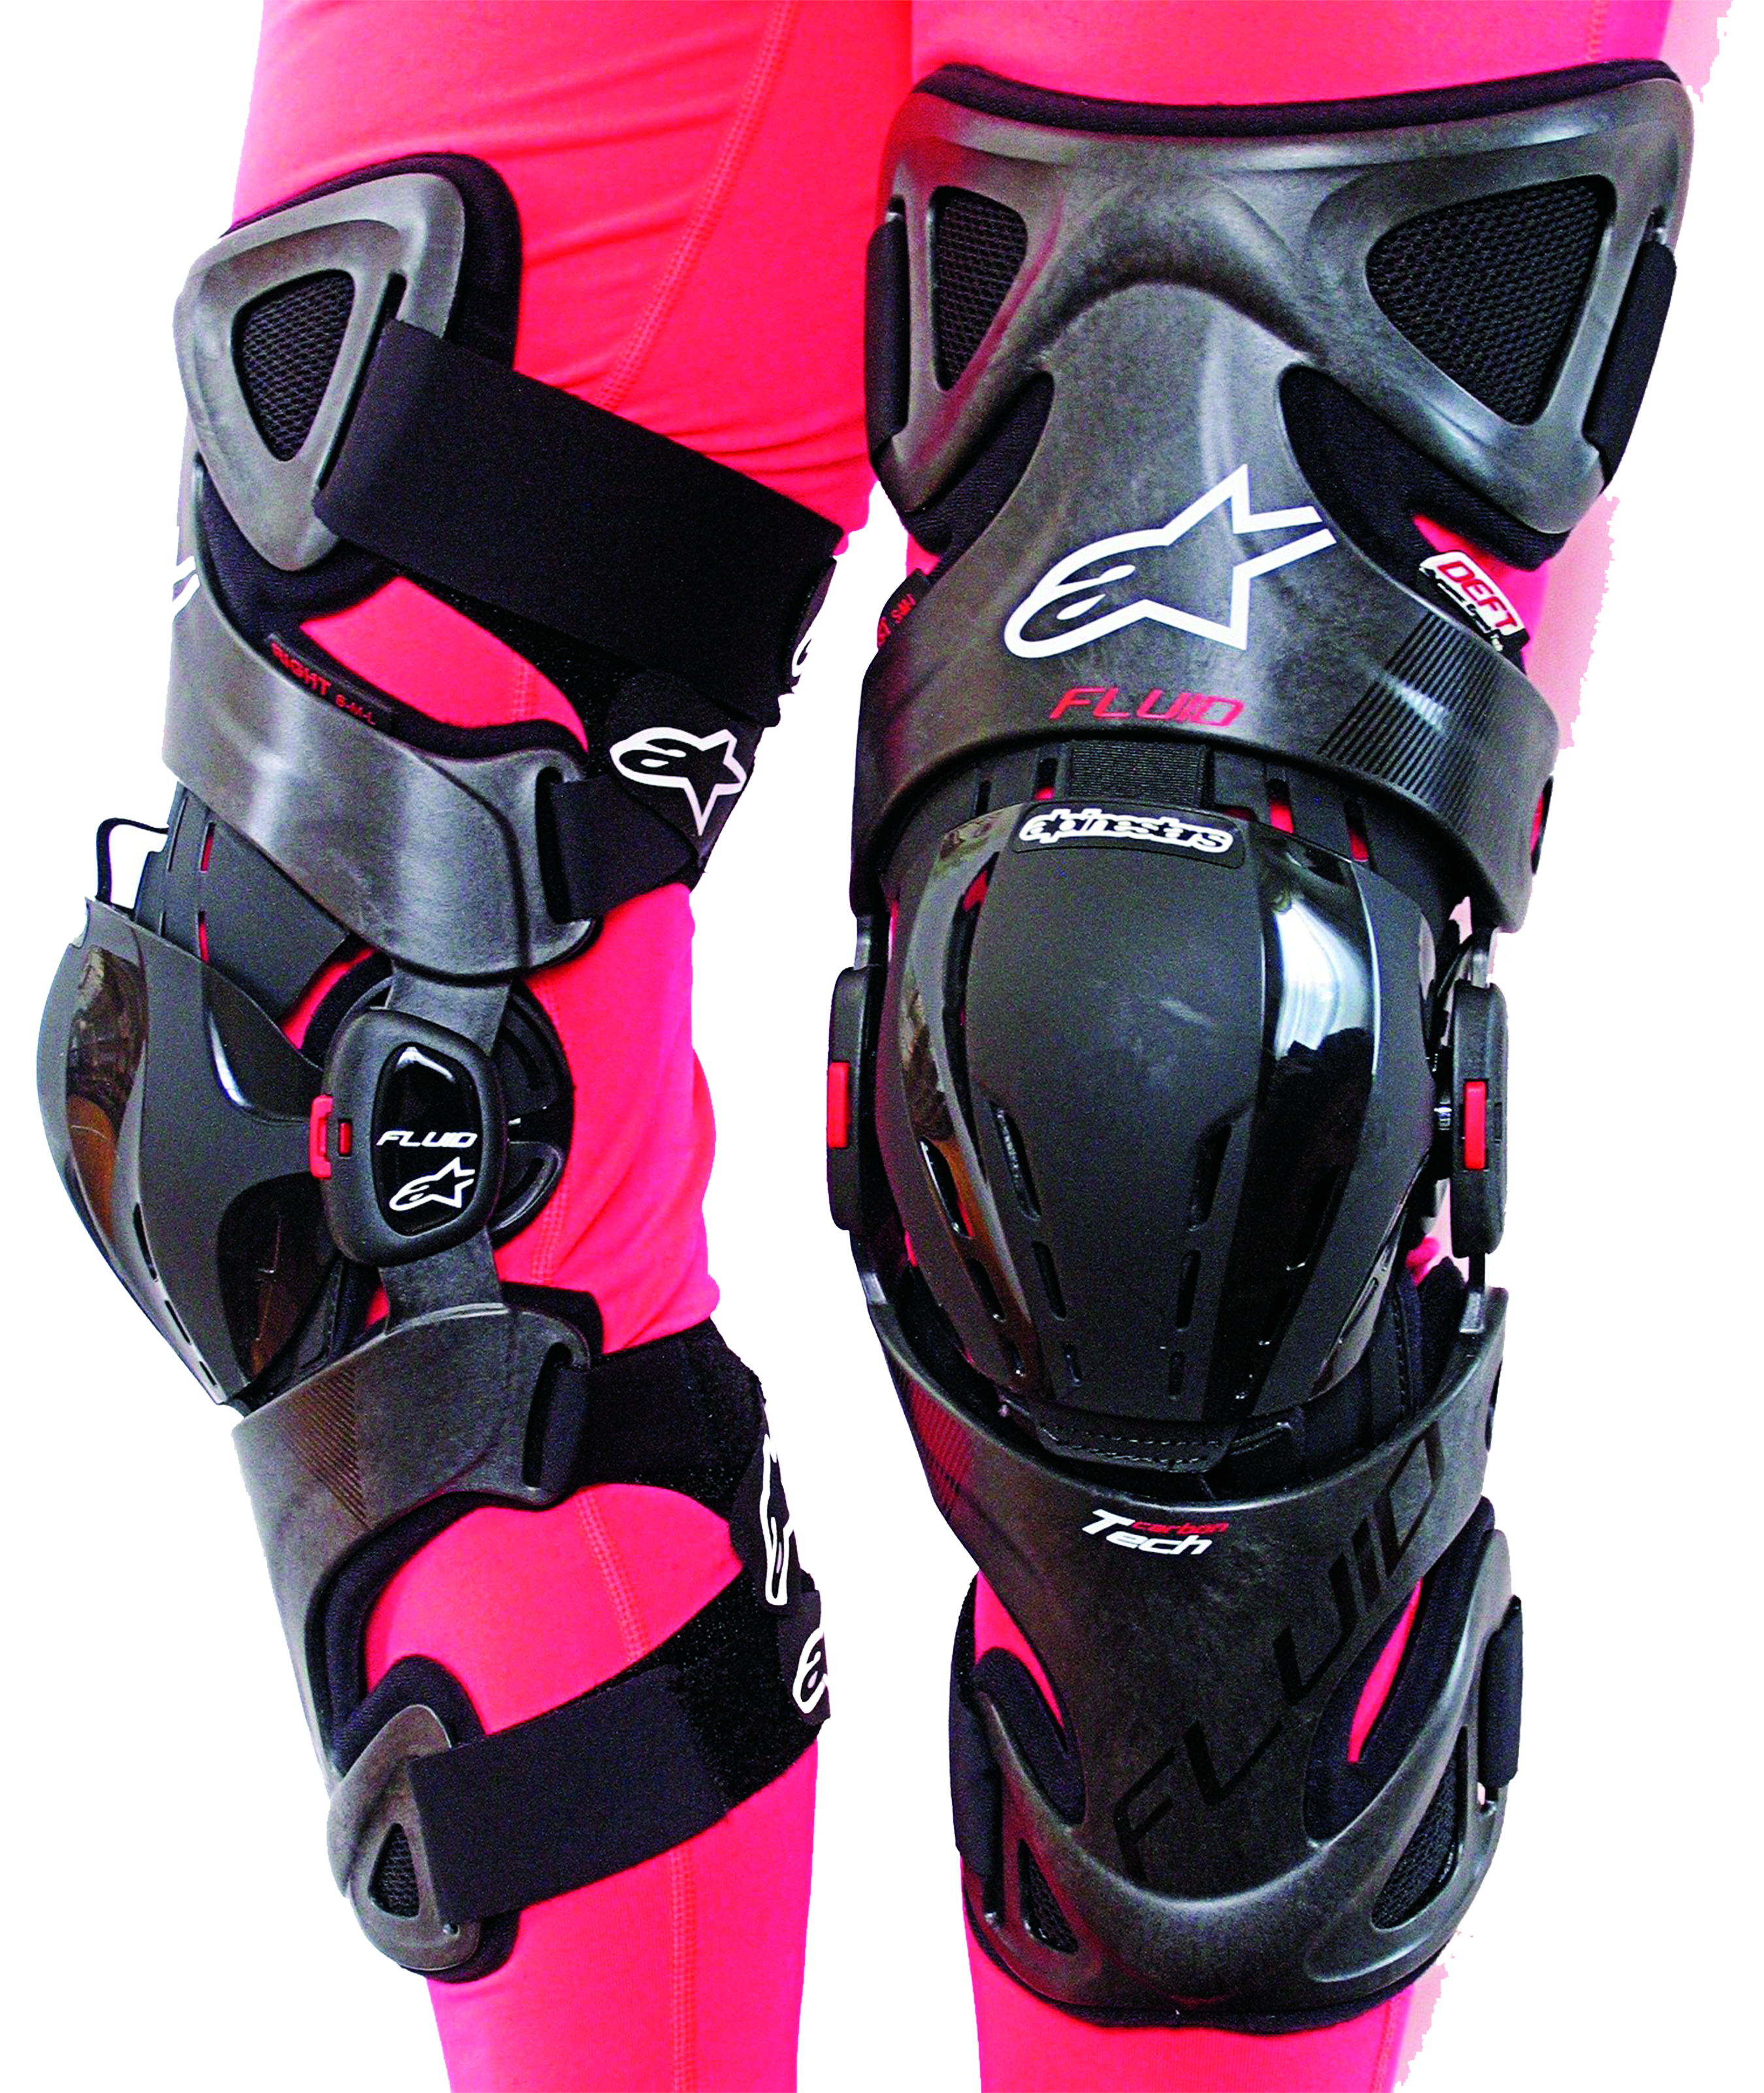 Product Comparison: Knee Protection 102 - Motorcycle Consumer News